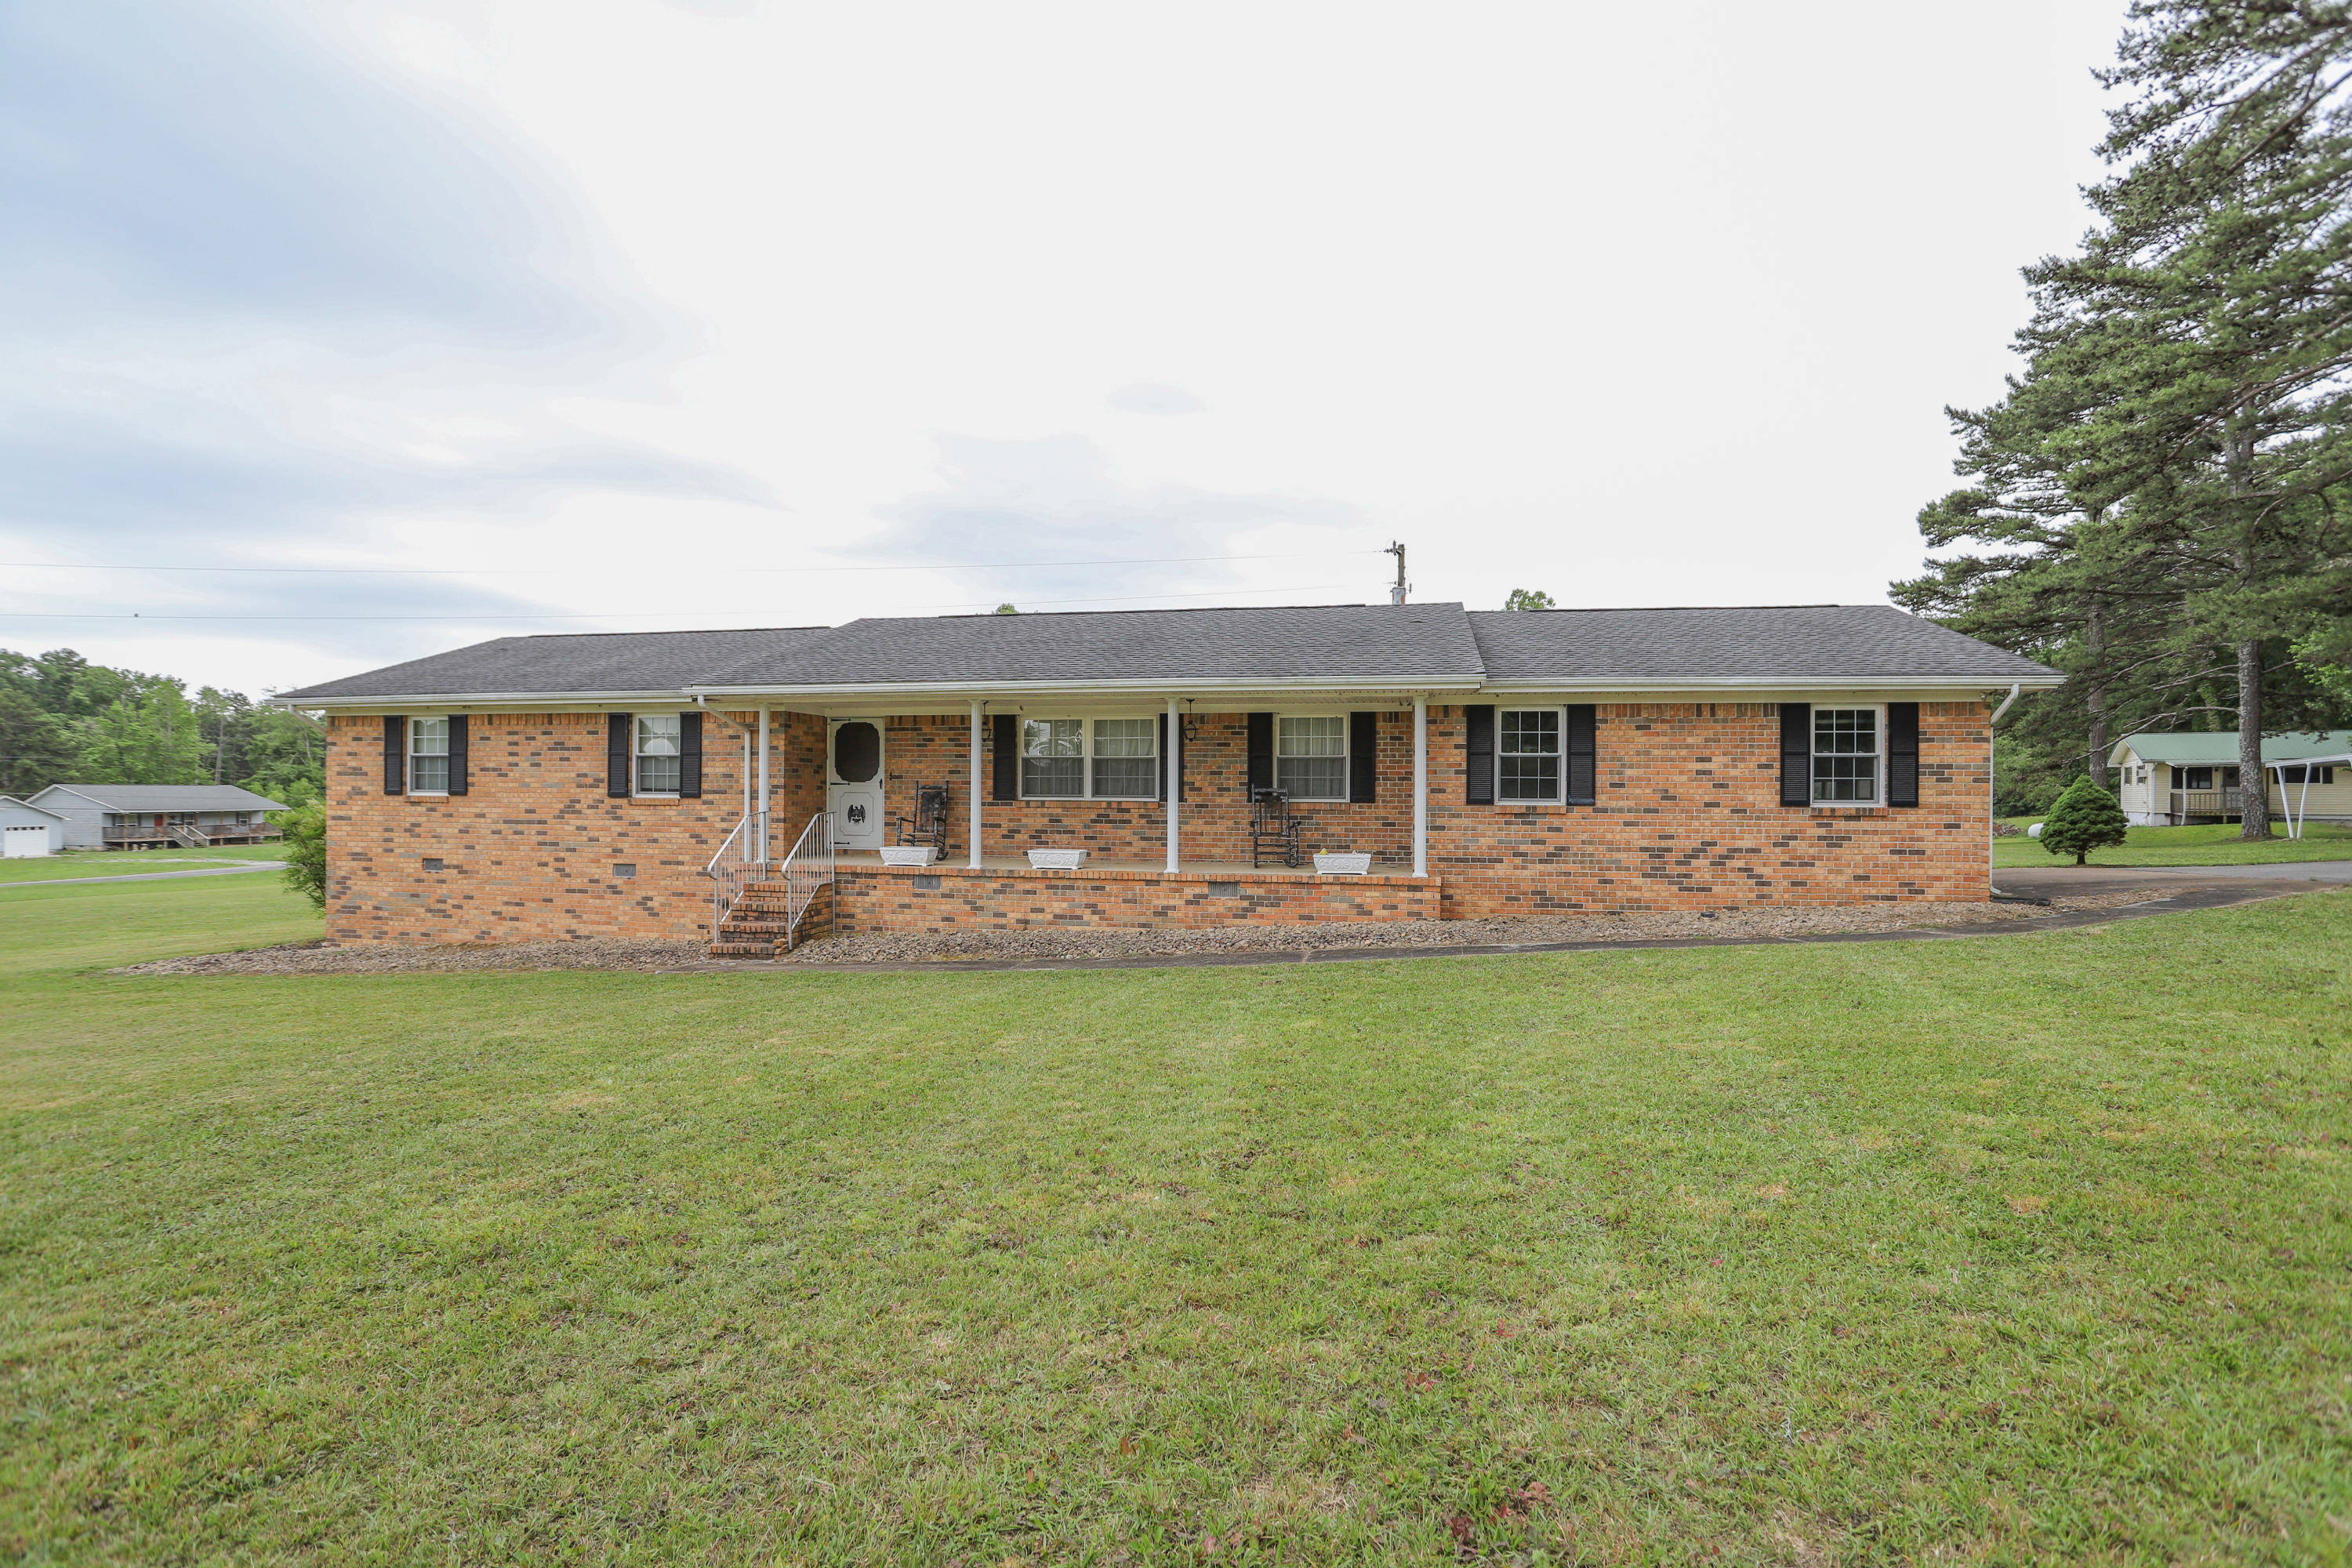 13505 Jones Gap Rd, Soddy Daisy, TN 37379